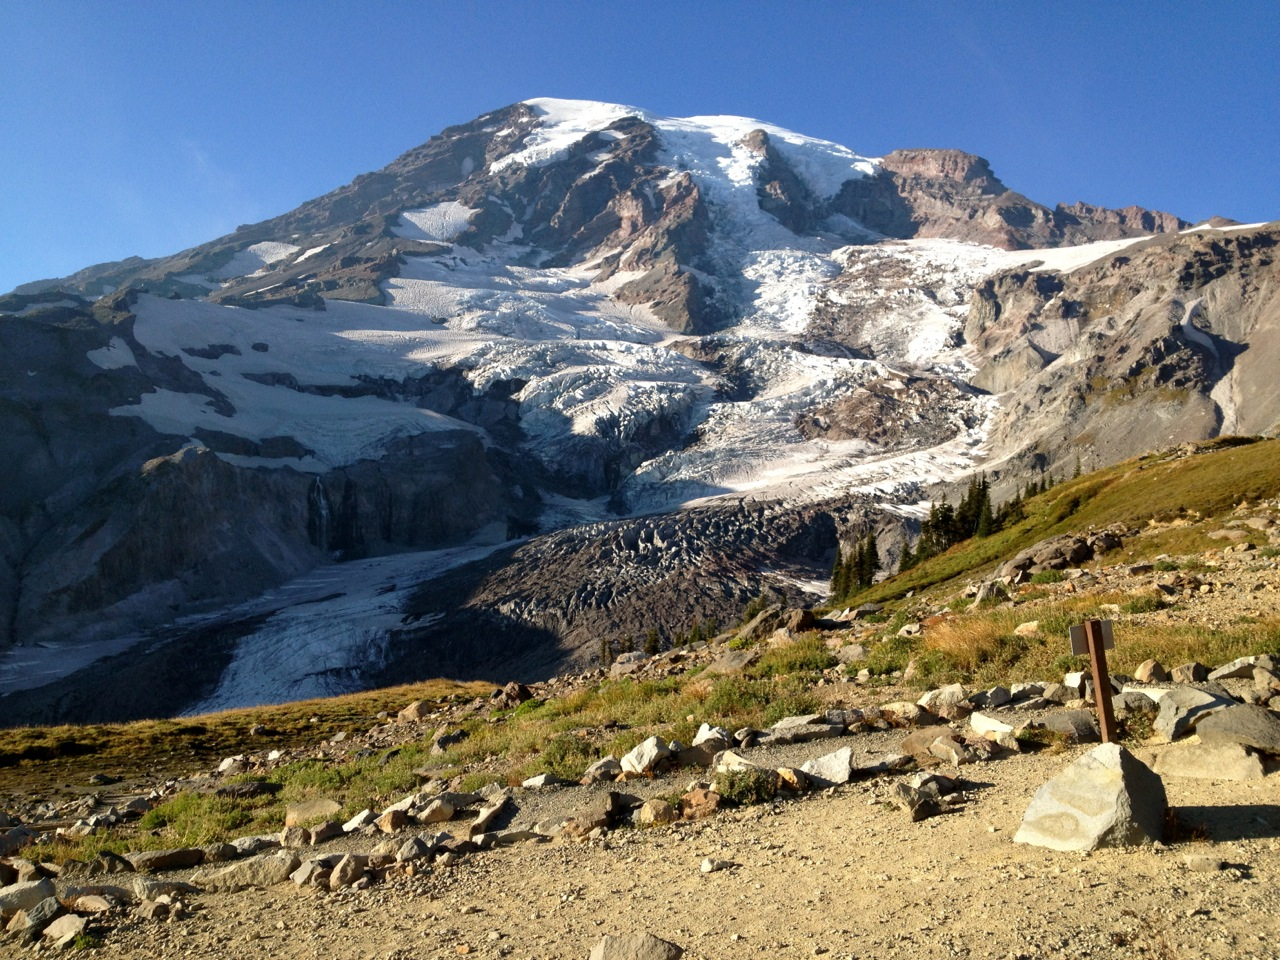 Glacier Vista Trail – Mount Rainier National Park, Washington